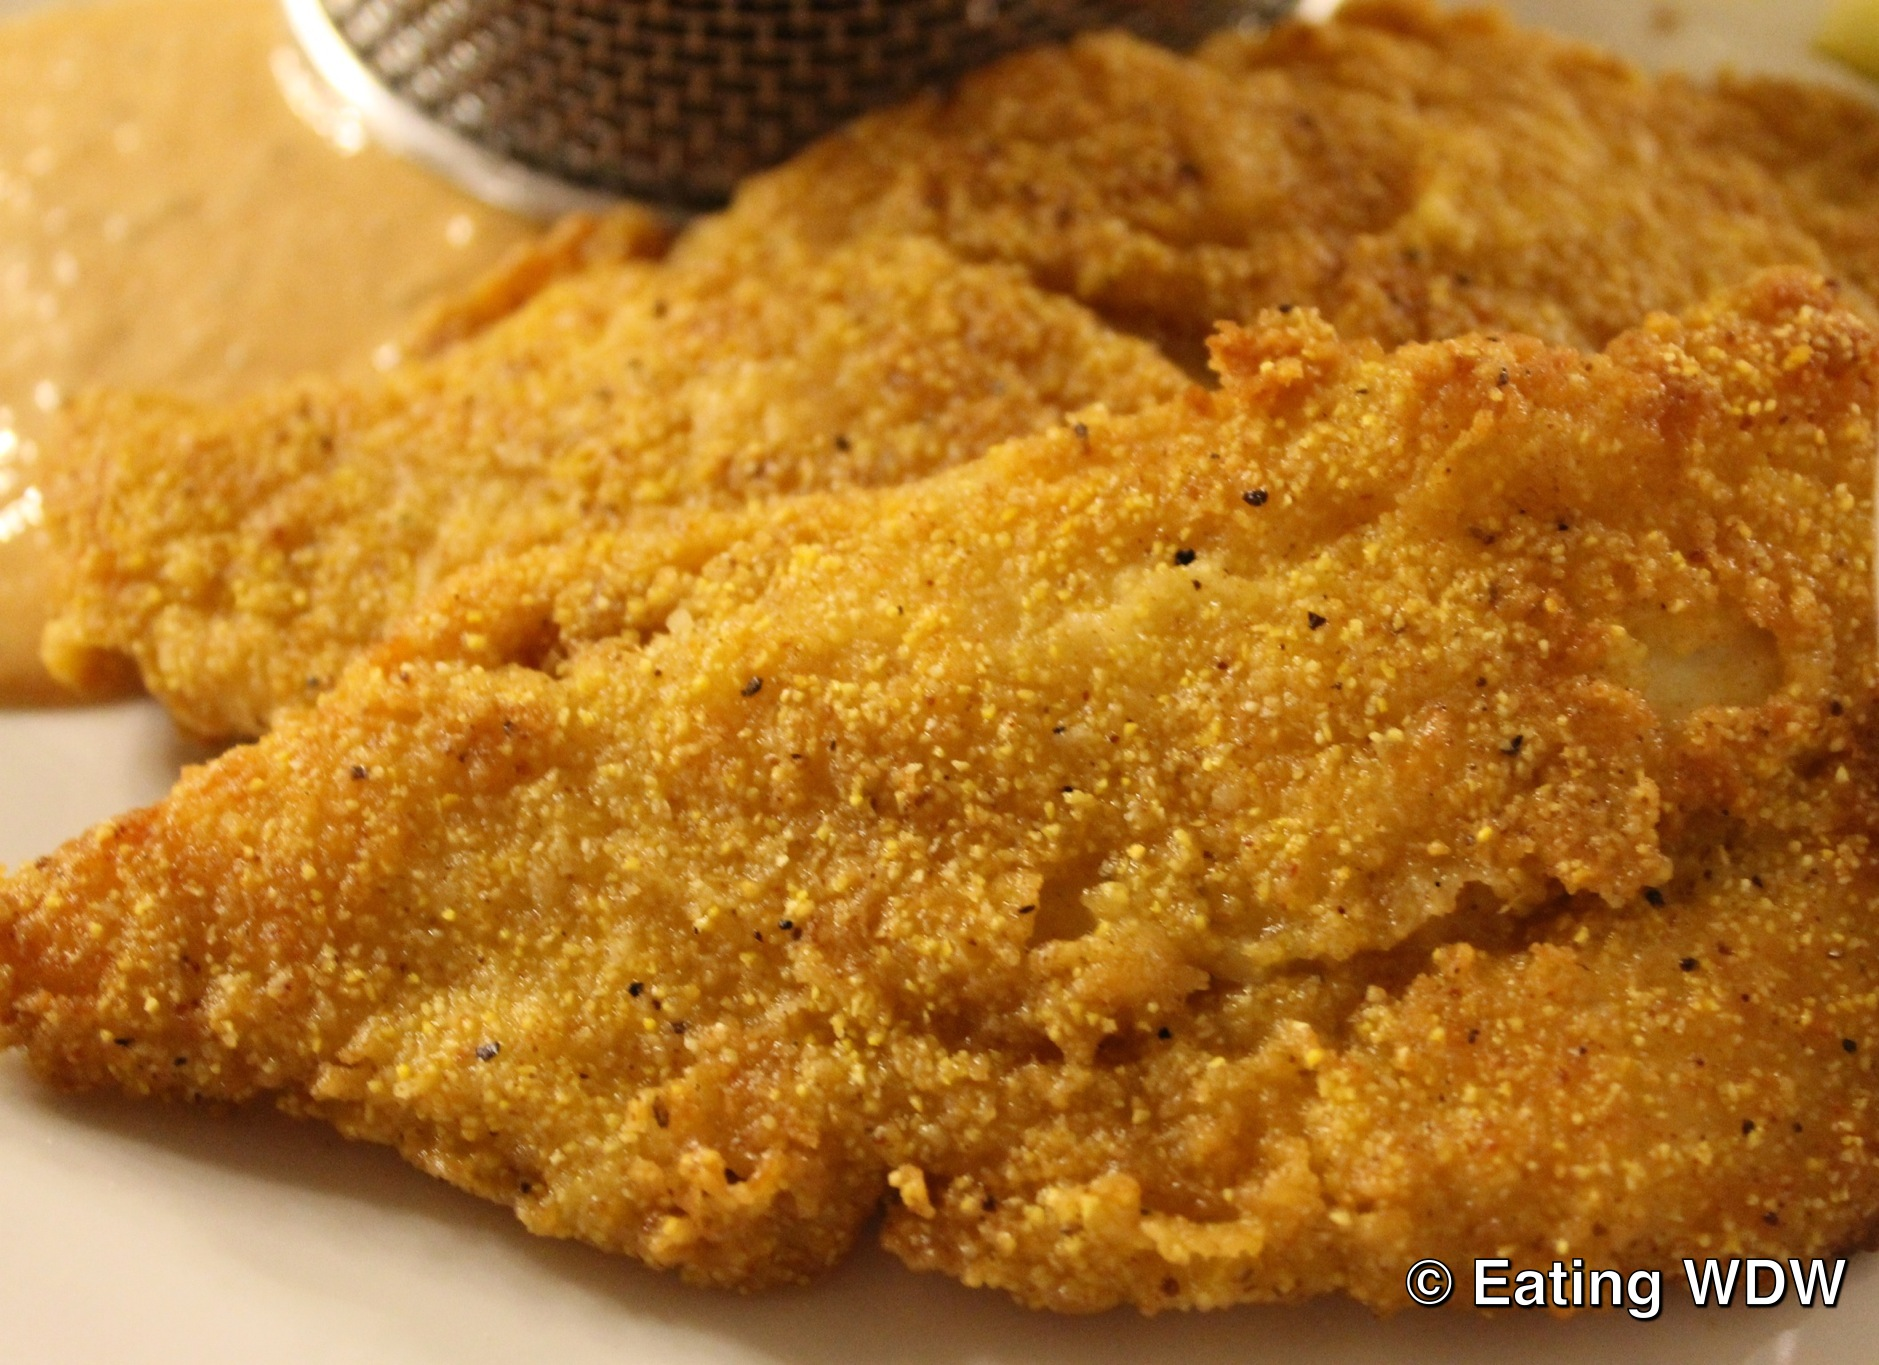 sharing fried catfish fried catfish flickr photo sharing fried catfish ...